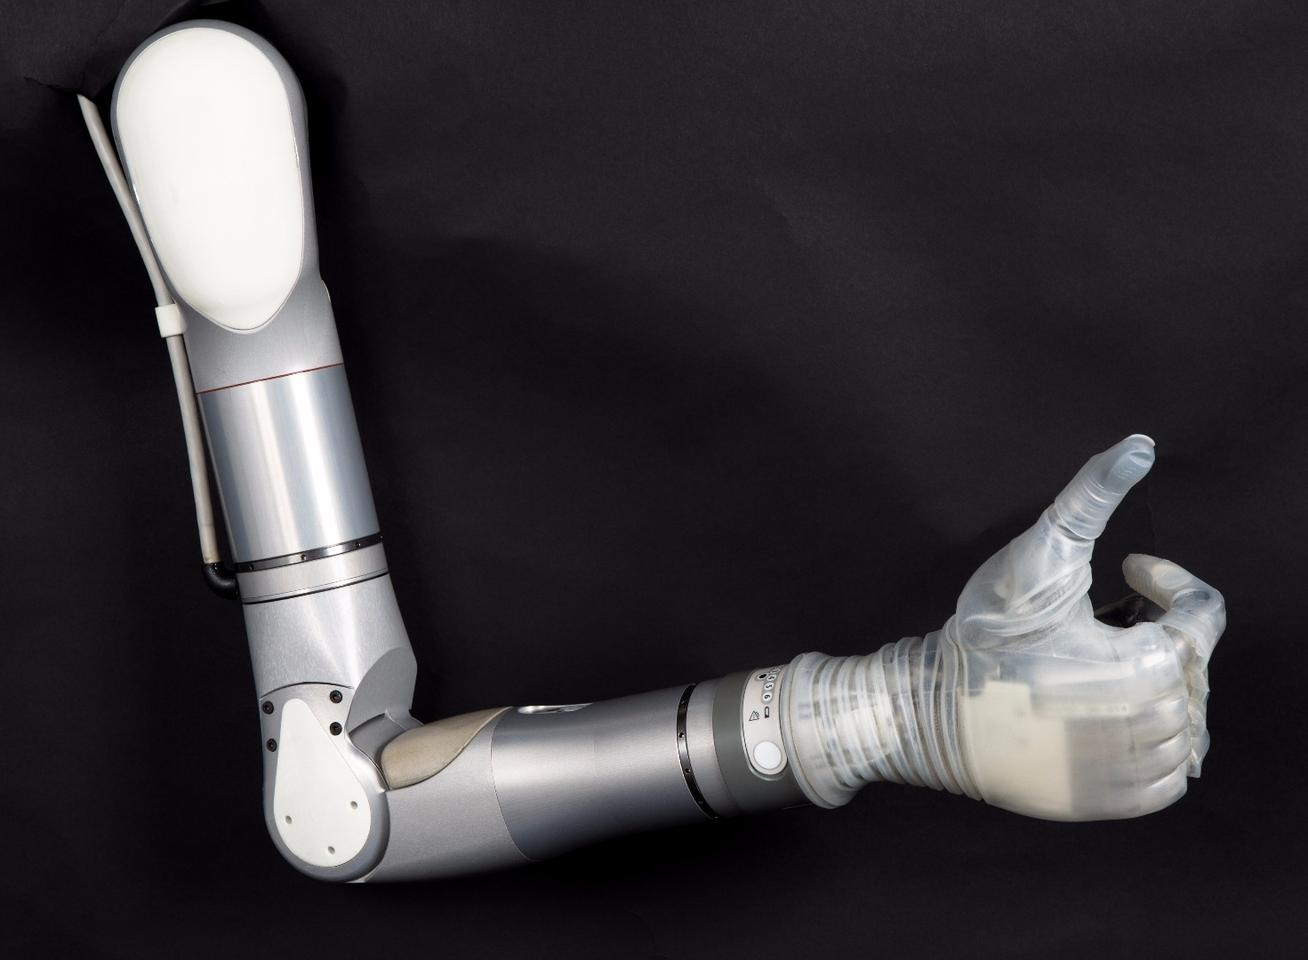 The LUKE arm willbecomeavailable from medical providers later this year